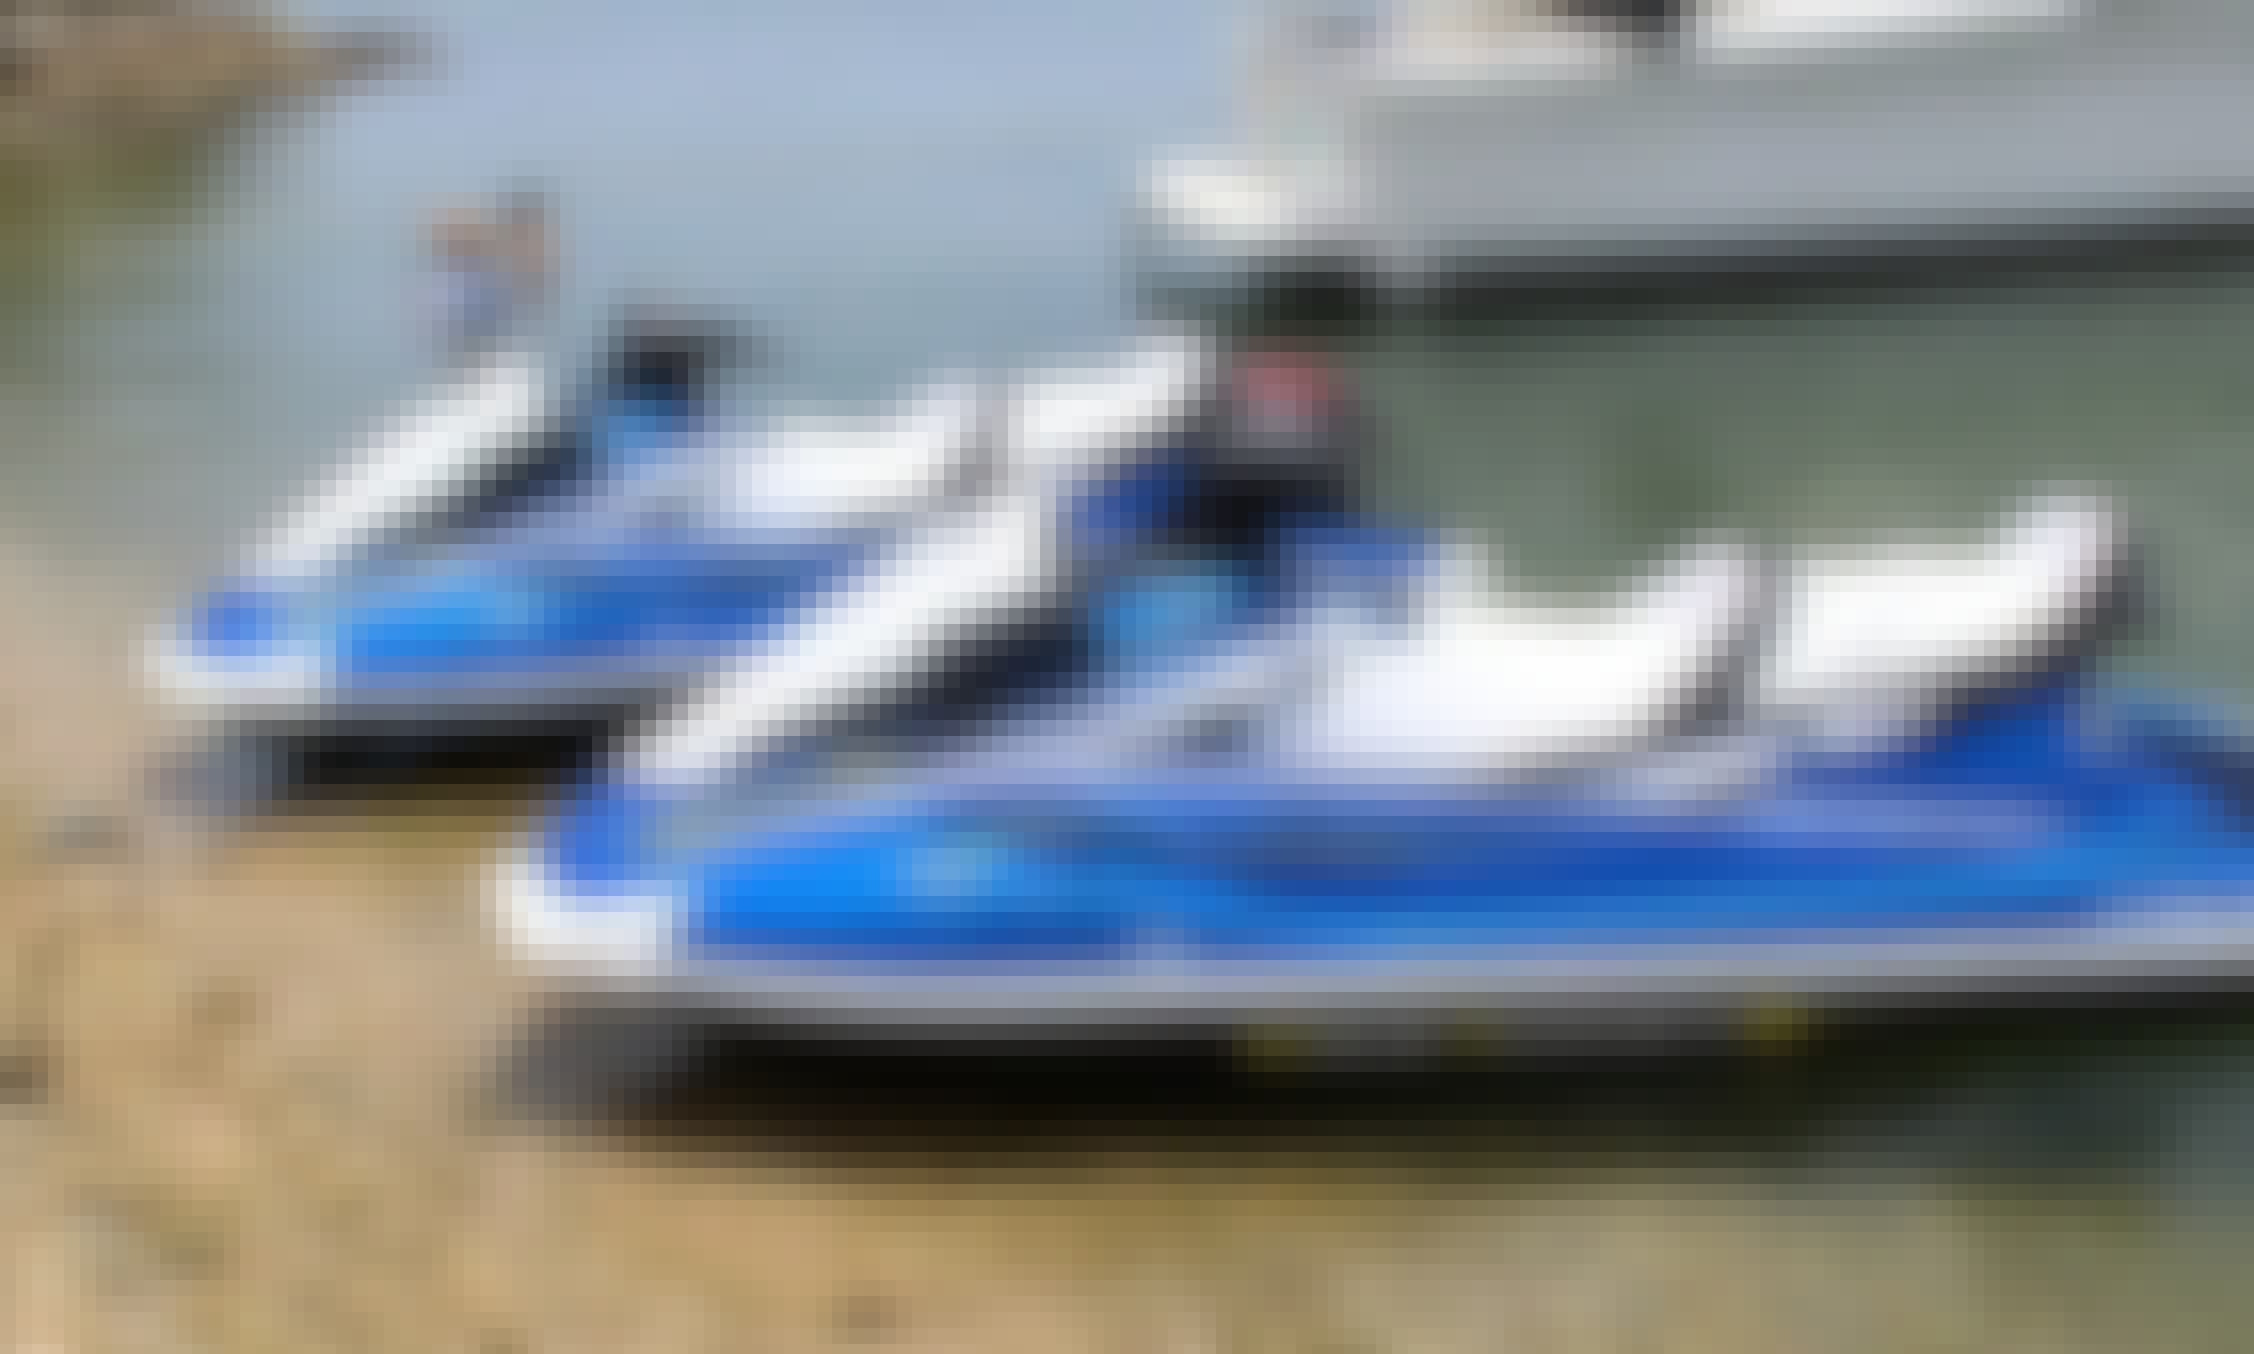 Jet Ski Rental in Boca Raton Florida